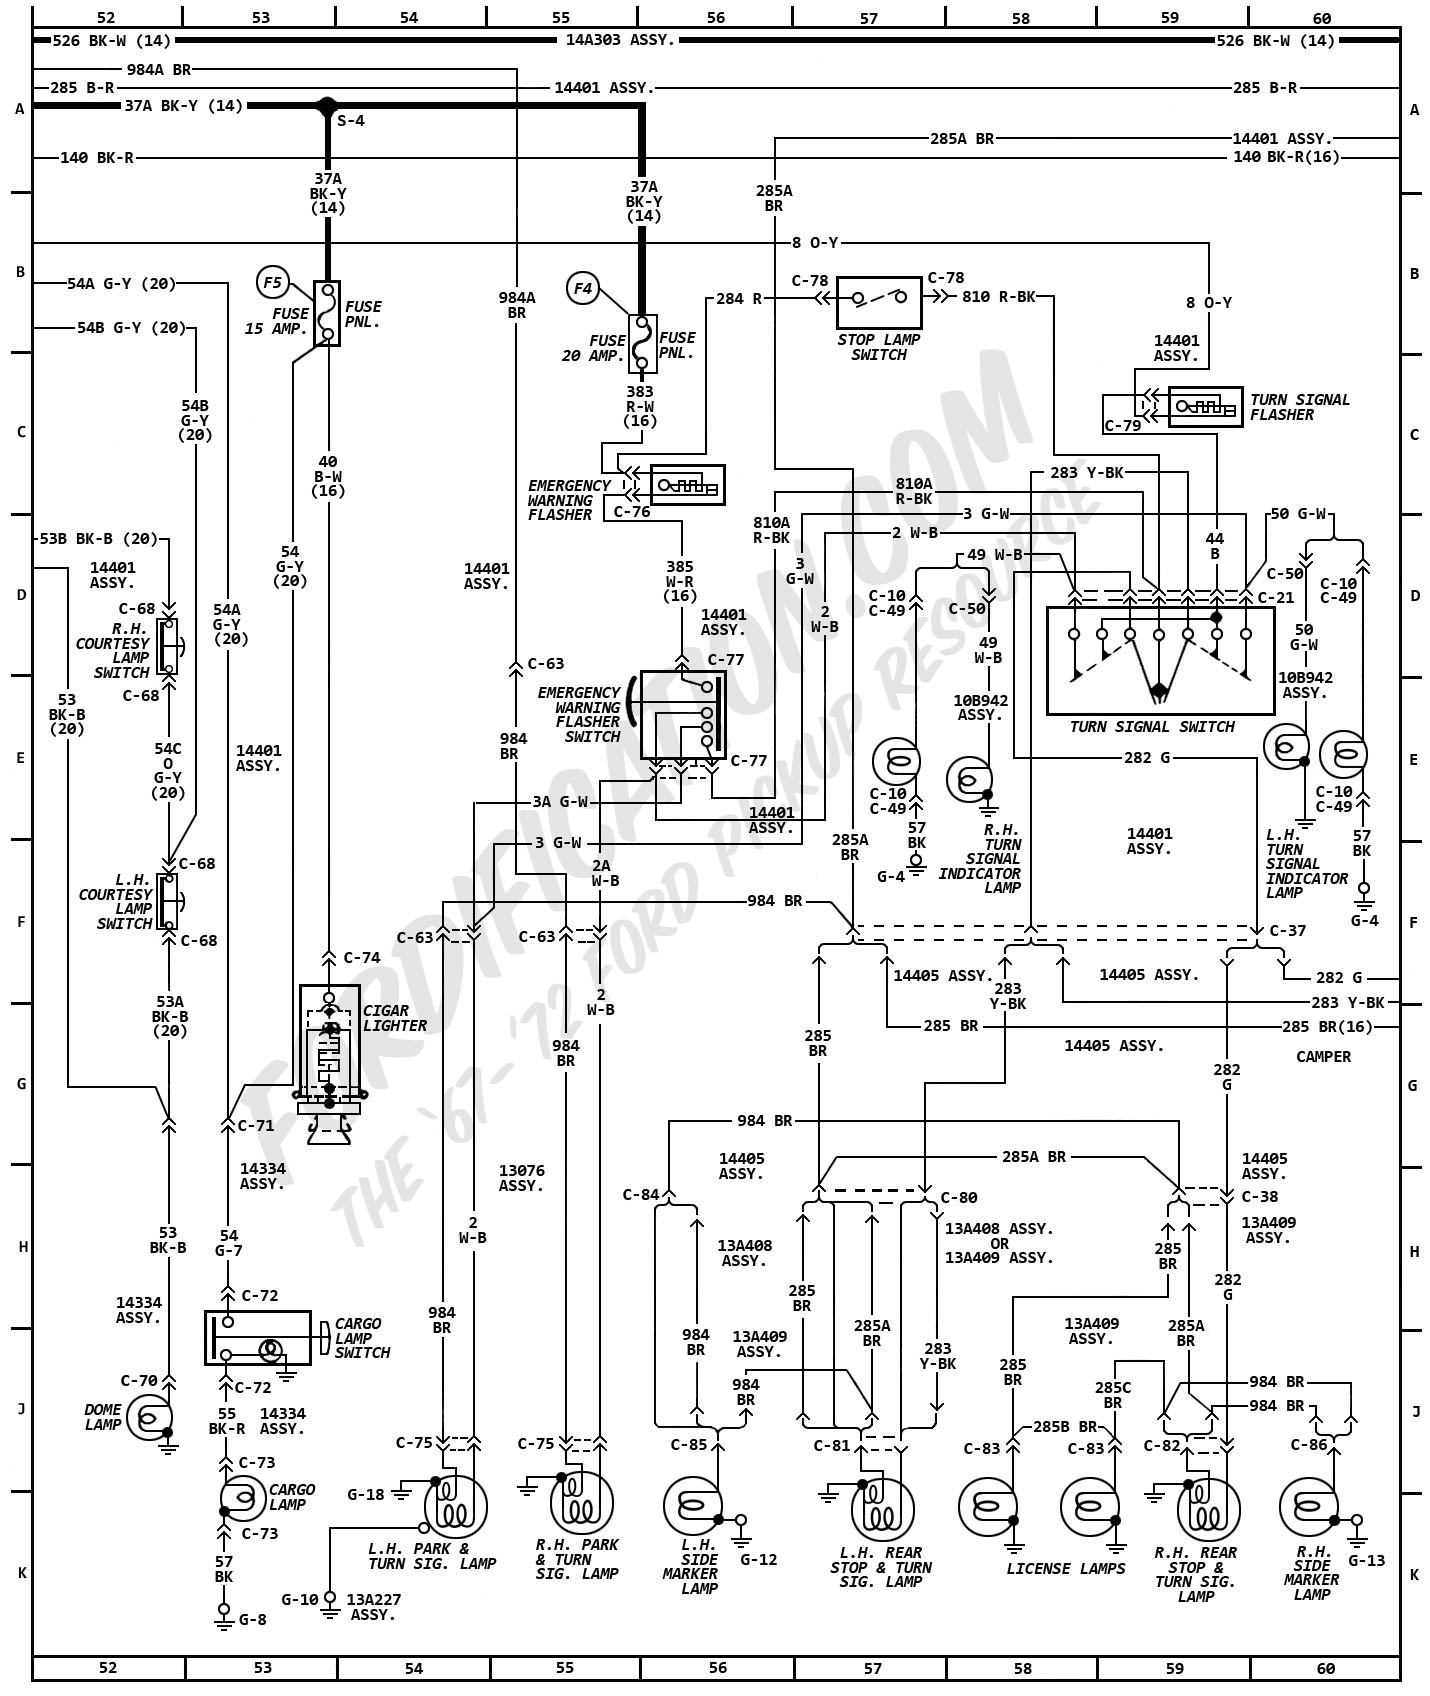 1959 ford pickup wiring circuit diagram template1959 ford truck wiring data wiring diagram